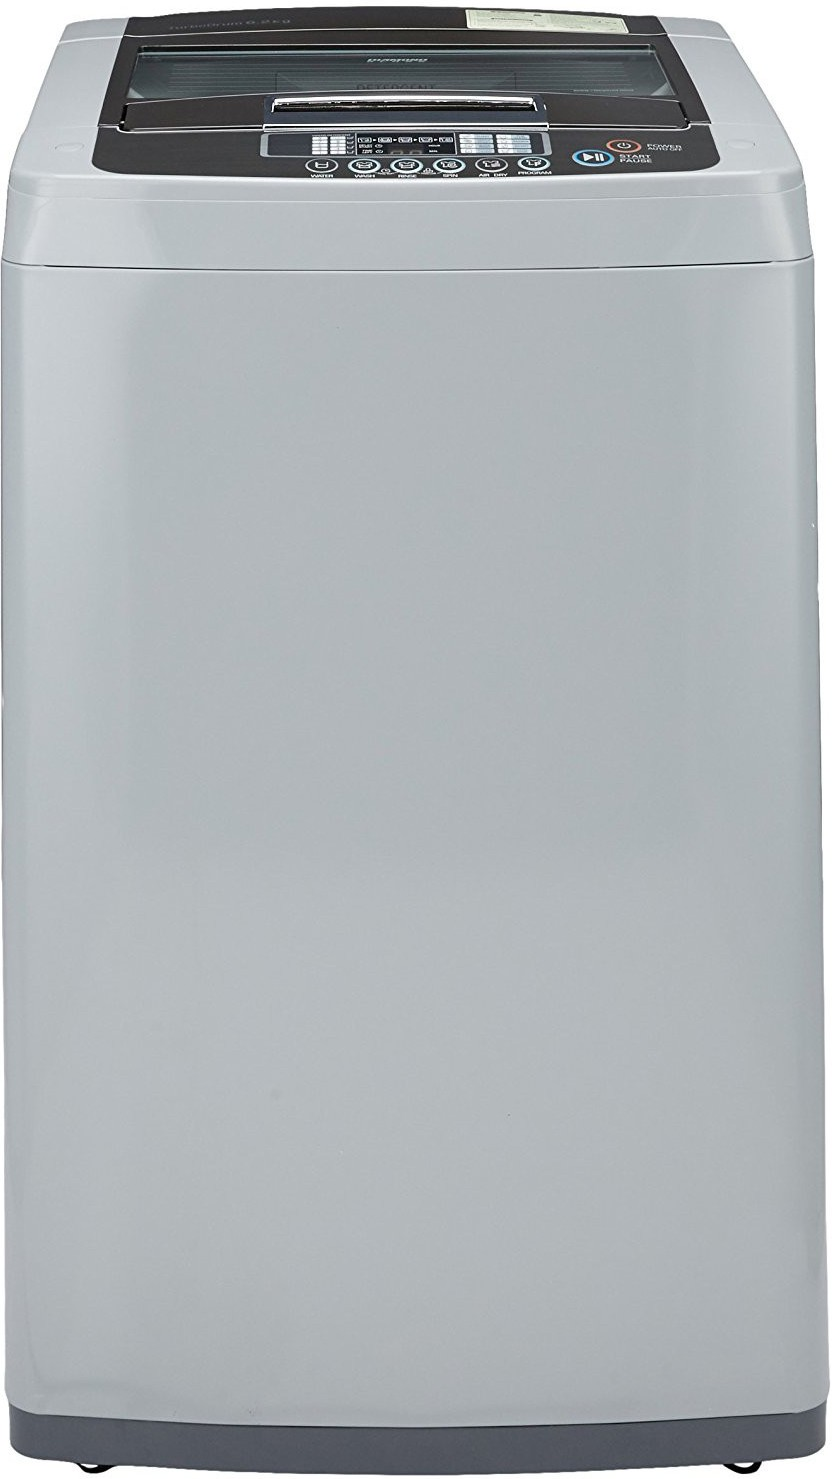 LG T7208TDDLM 6.2KG Fully Automatic Top Load Washing Machine